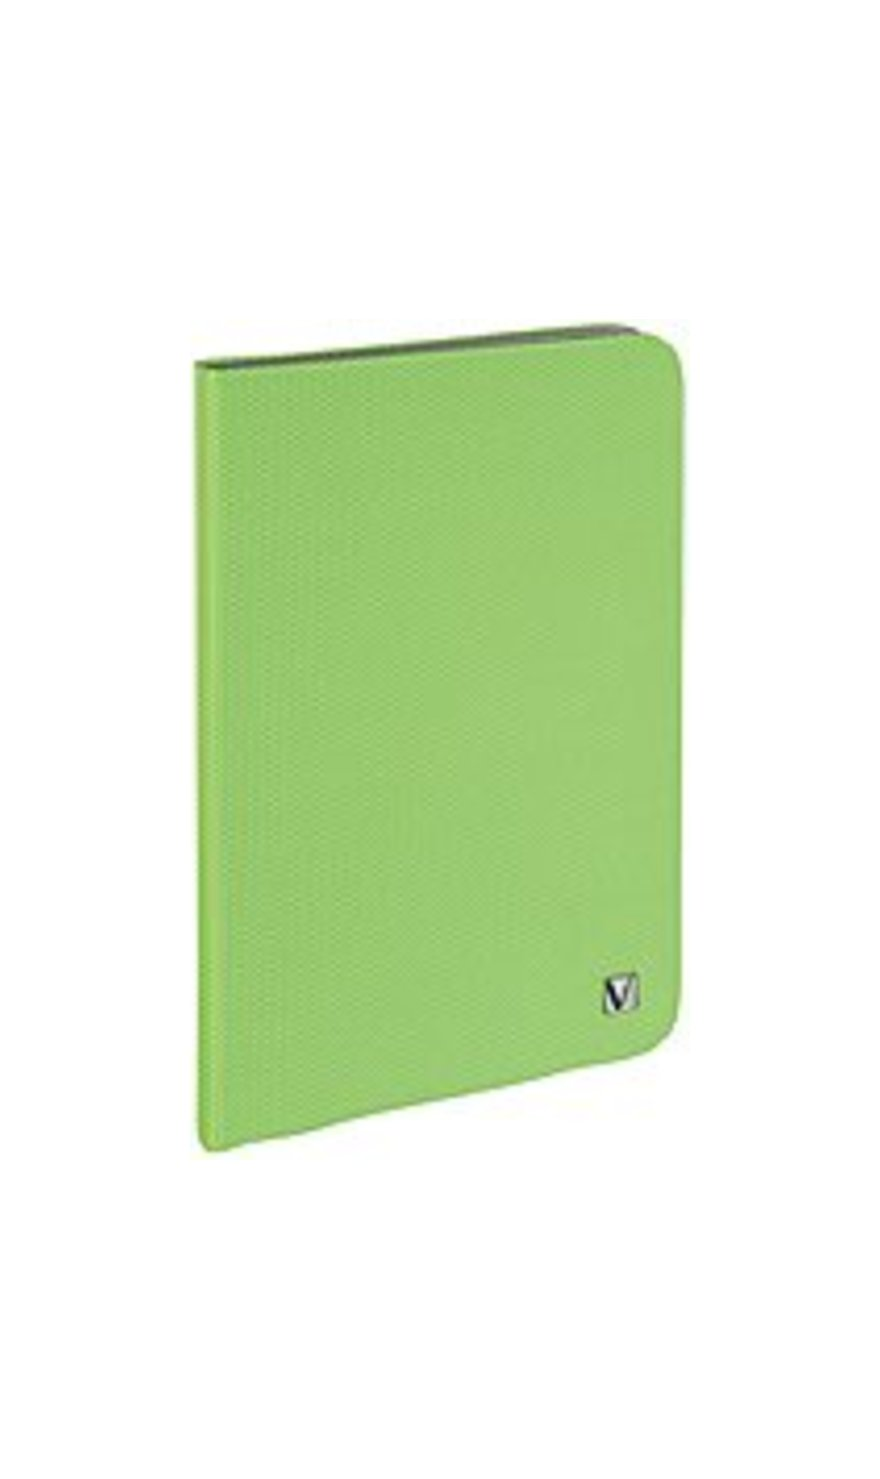 Verbatim_023942981039_98103_Folio_Hex_Case_for_iPad_Mini__Mint_Green